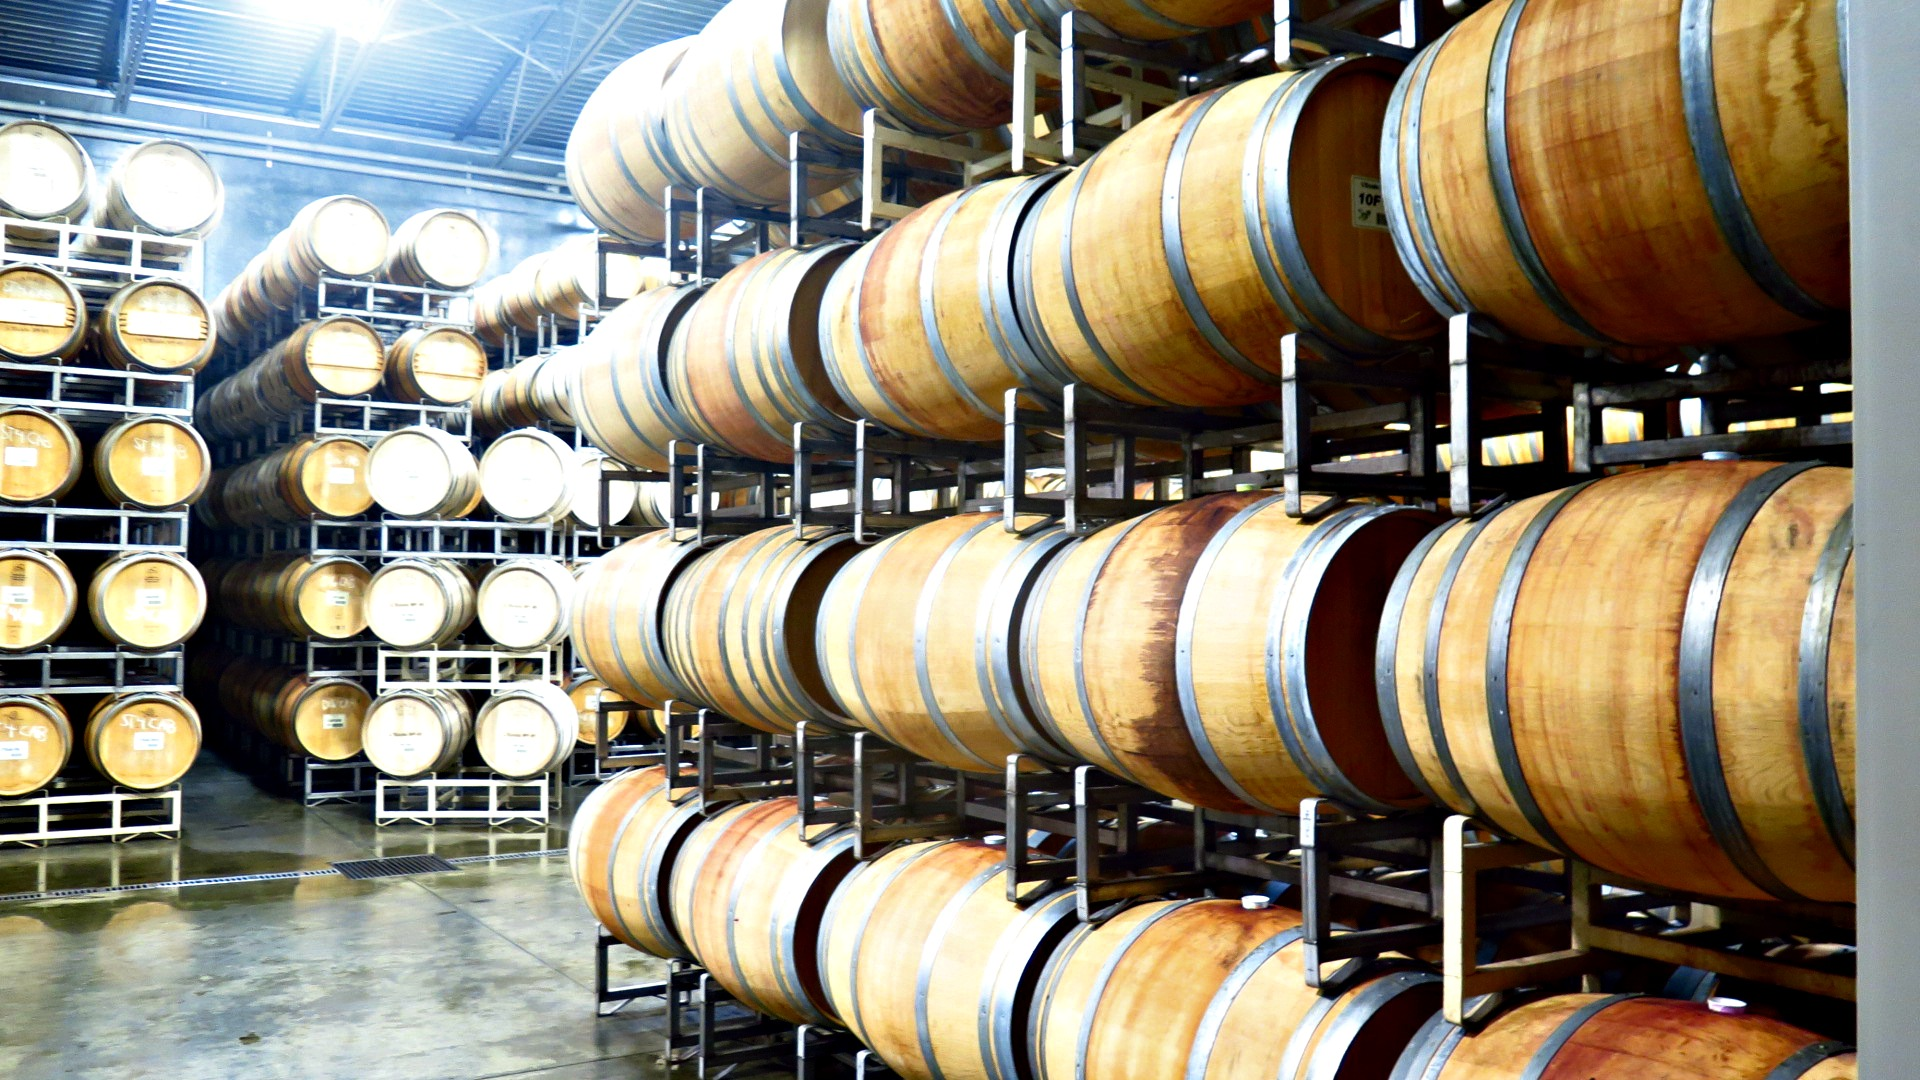 Their barrel room. I know...hideous, right? Pfft...